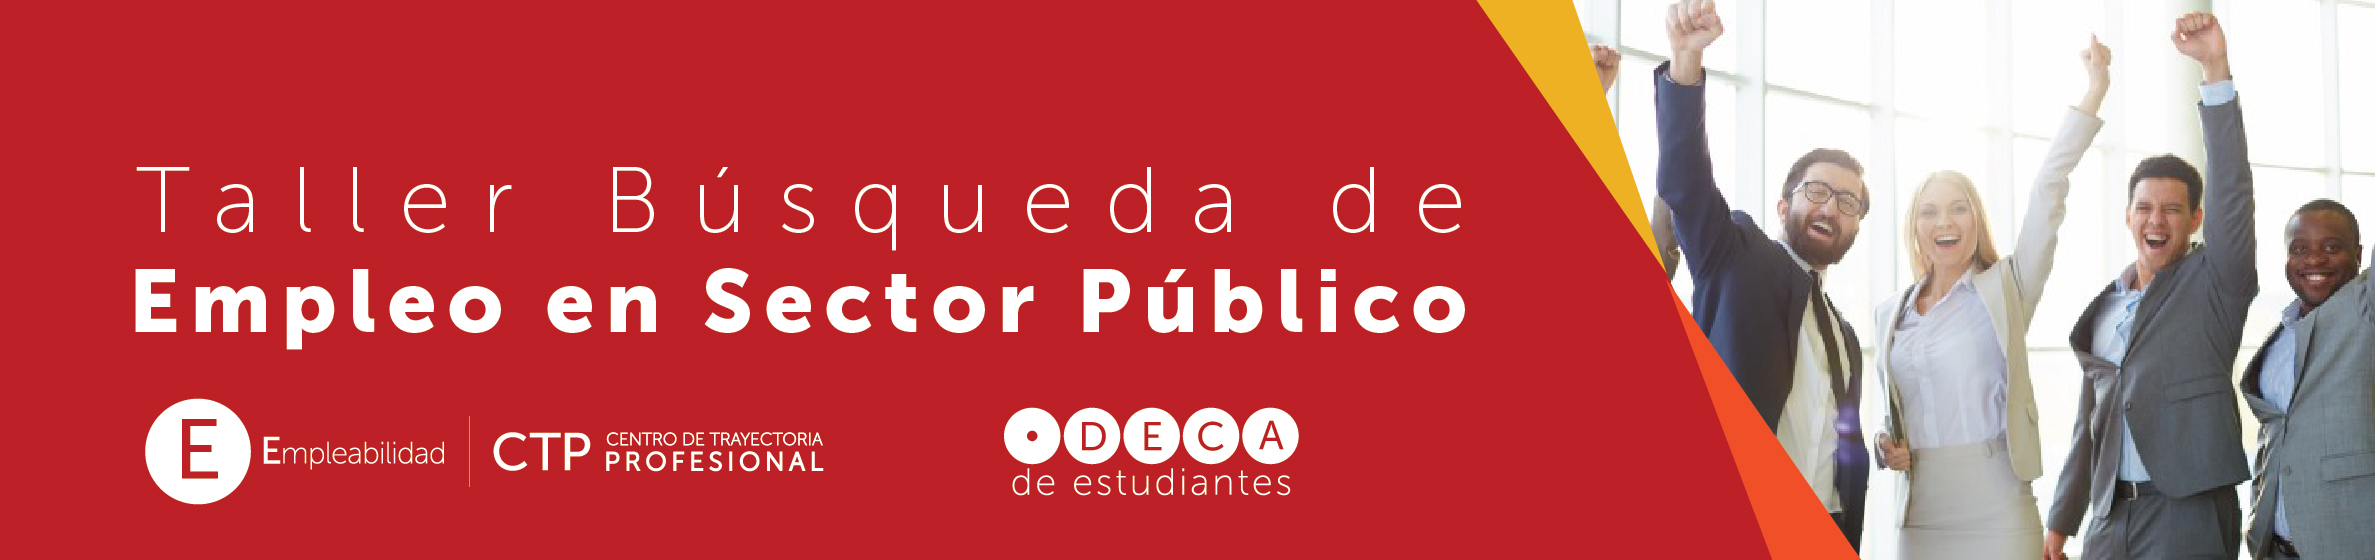 B_squeda_empleo_sector_p_blico_g